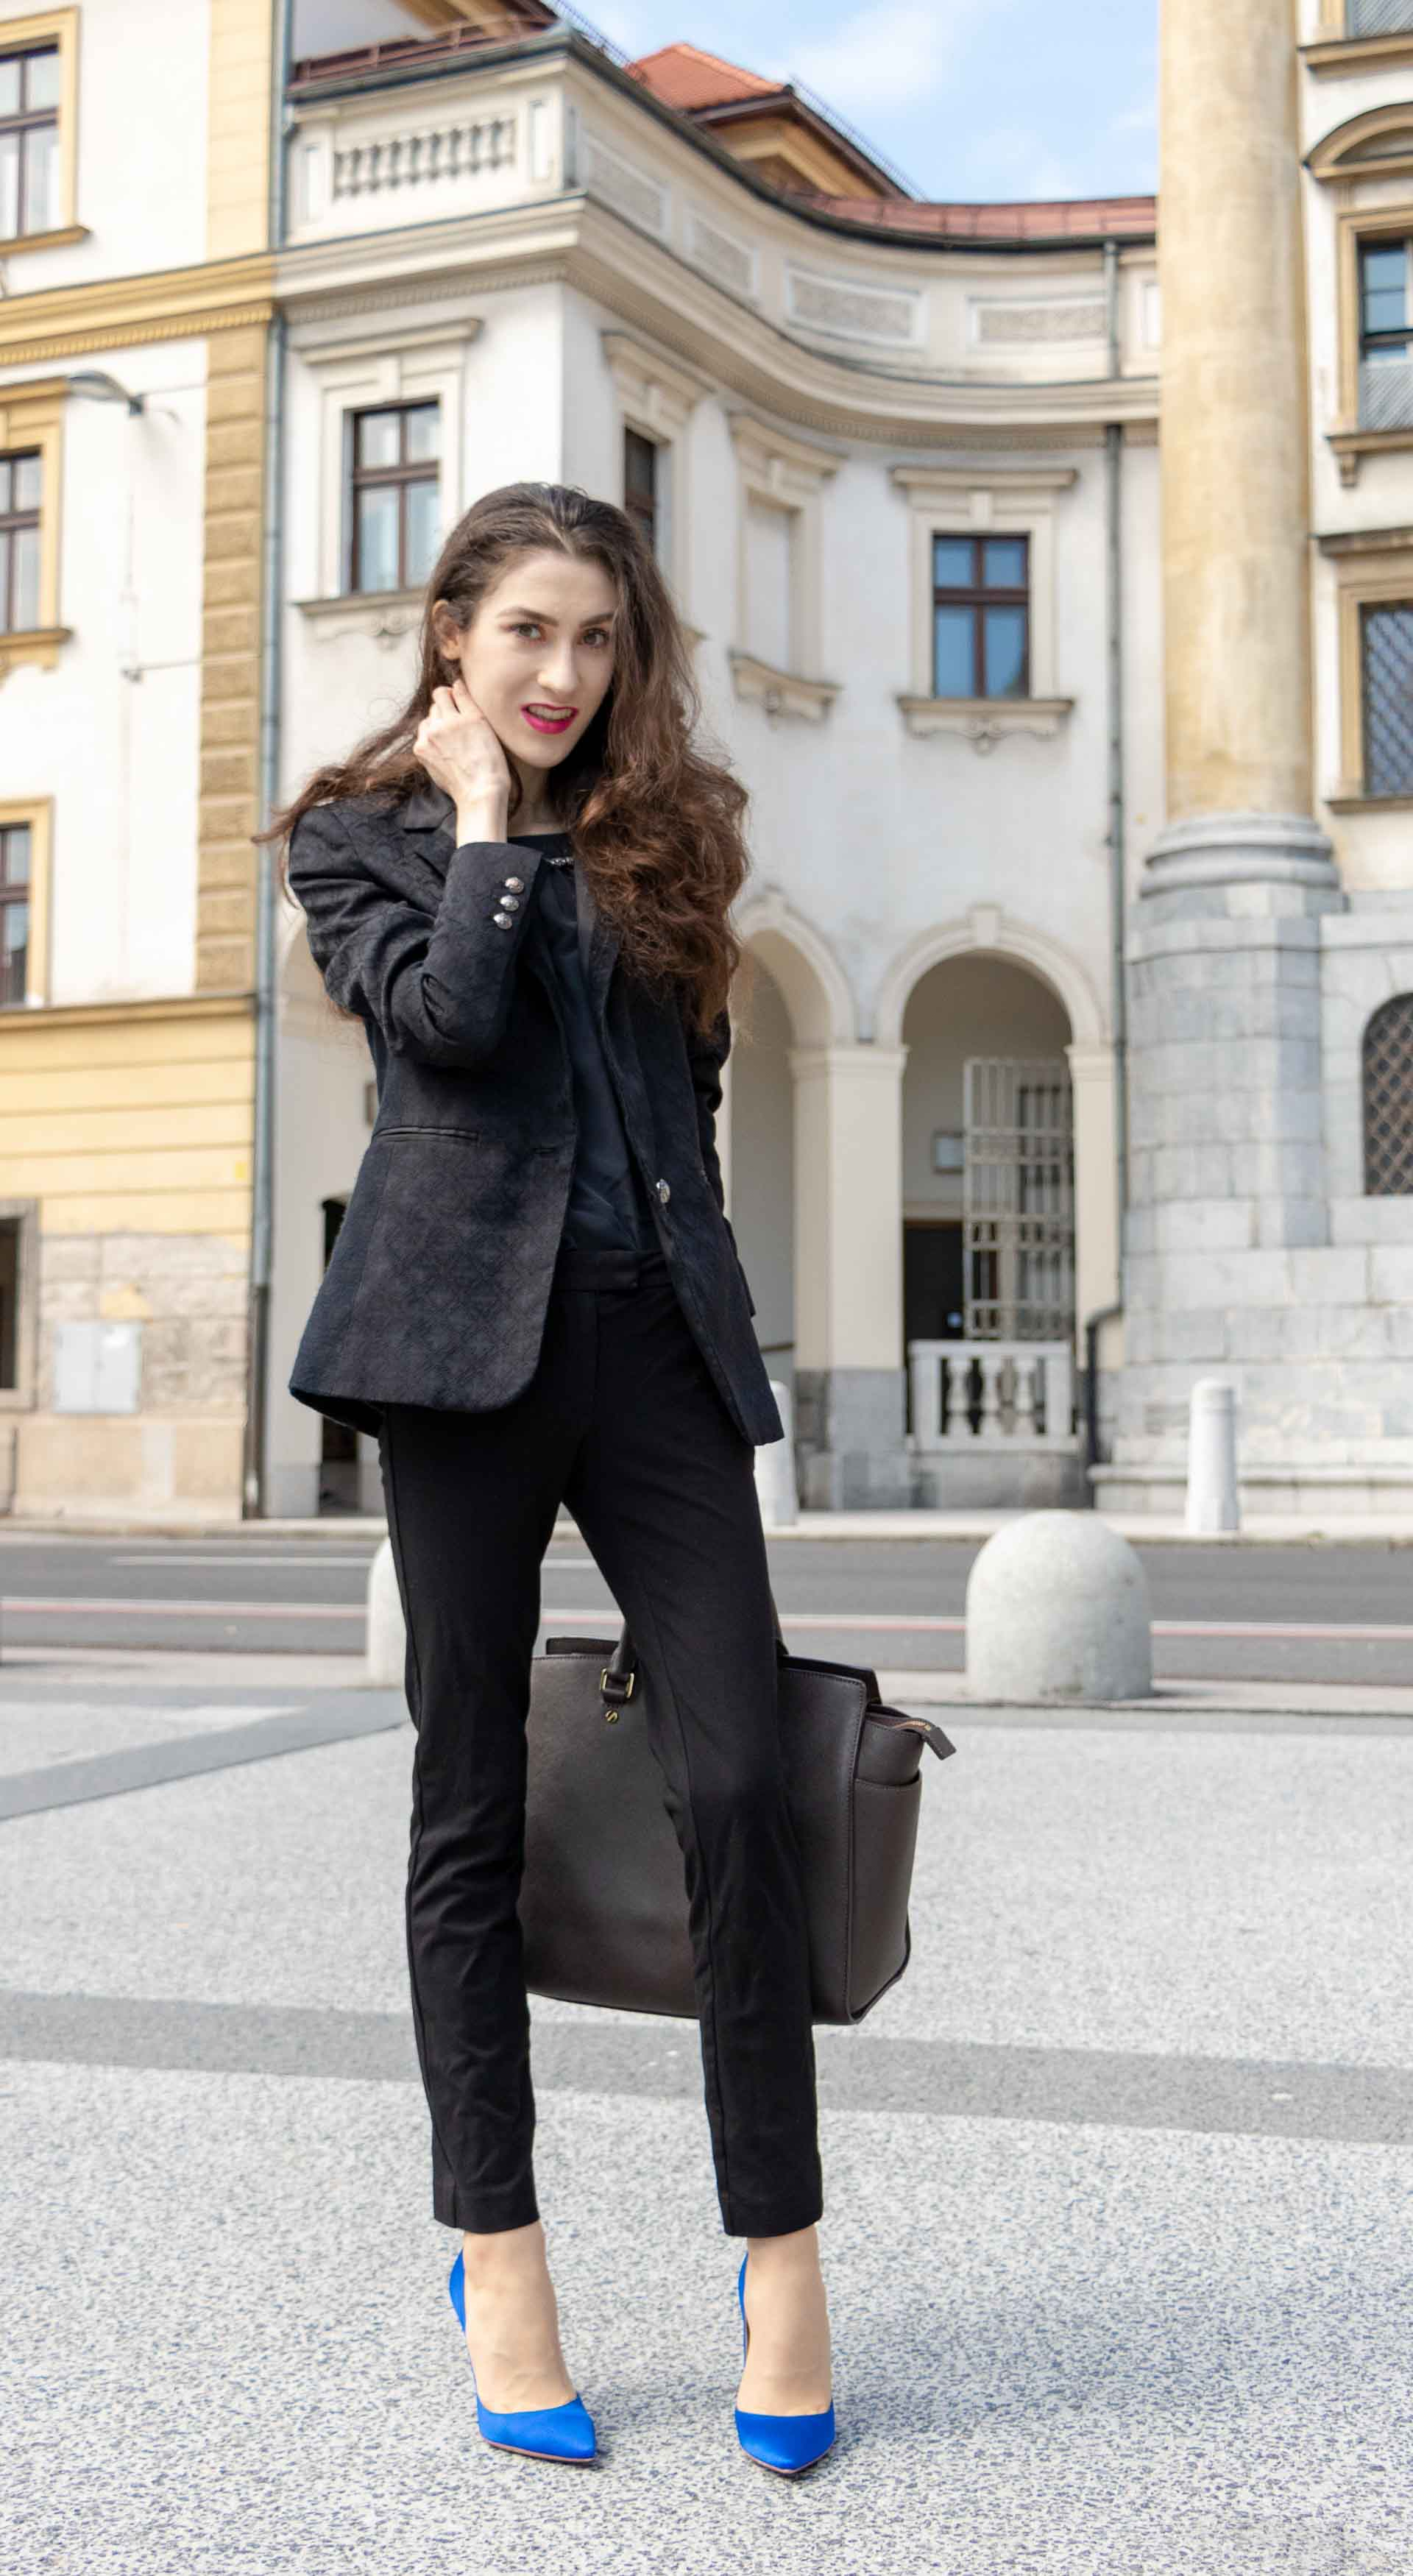 Beautiful Slovenian Fashion Blogger Veronika Lipar of Brunette from Wall wearing black pantsuit, brown Michael Kors selma top handle tote bag, Gianvito Rossi blue satin pumps for work in autumn